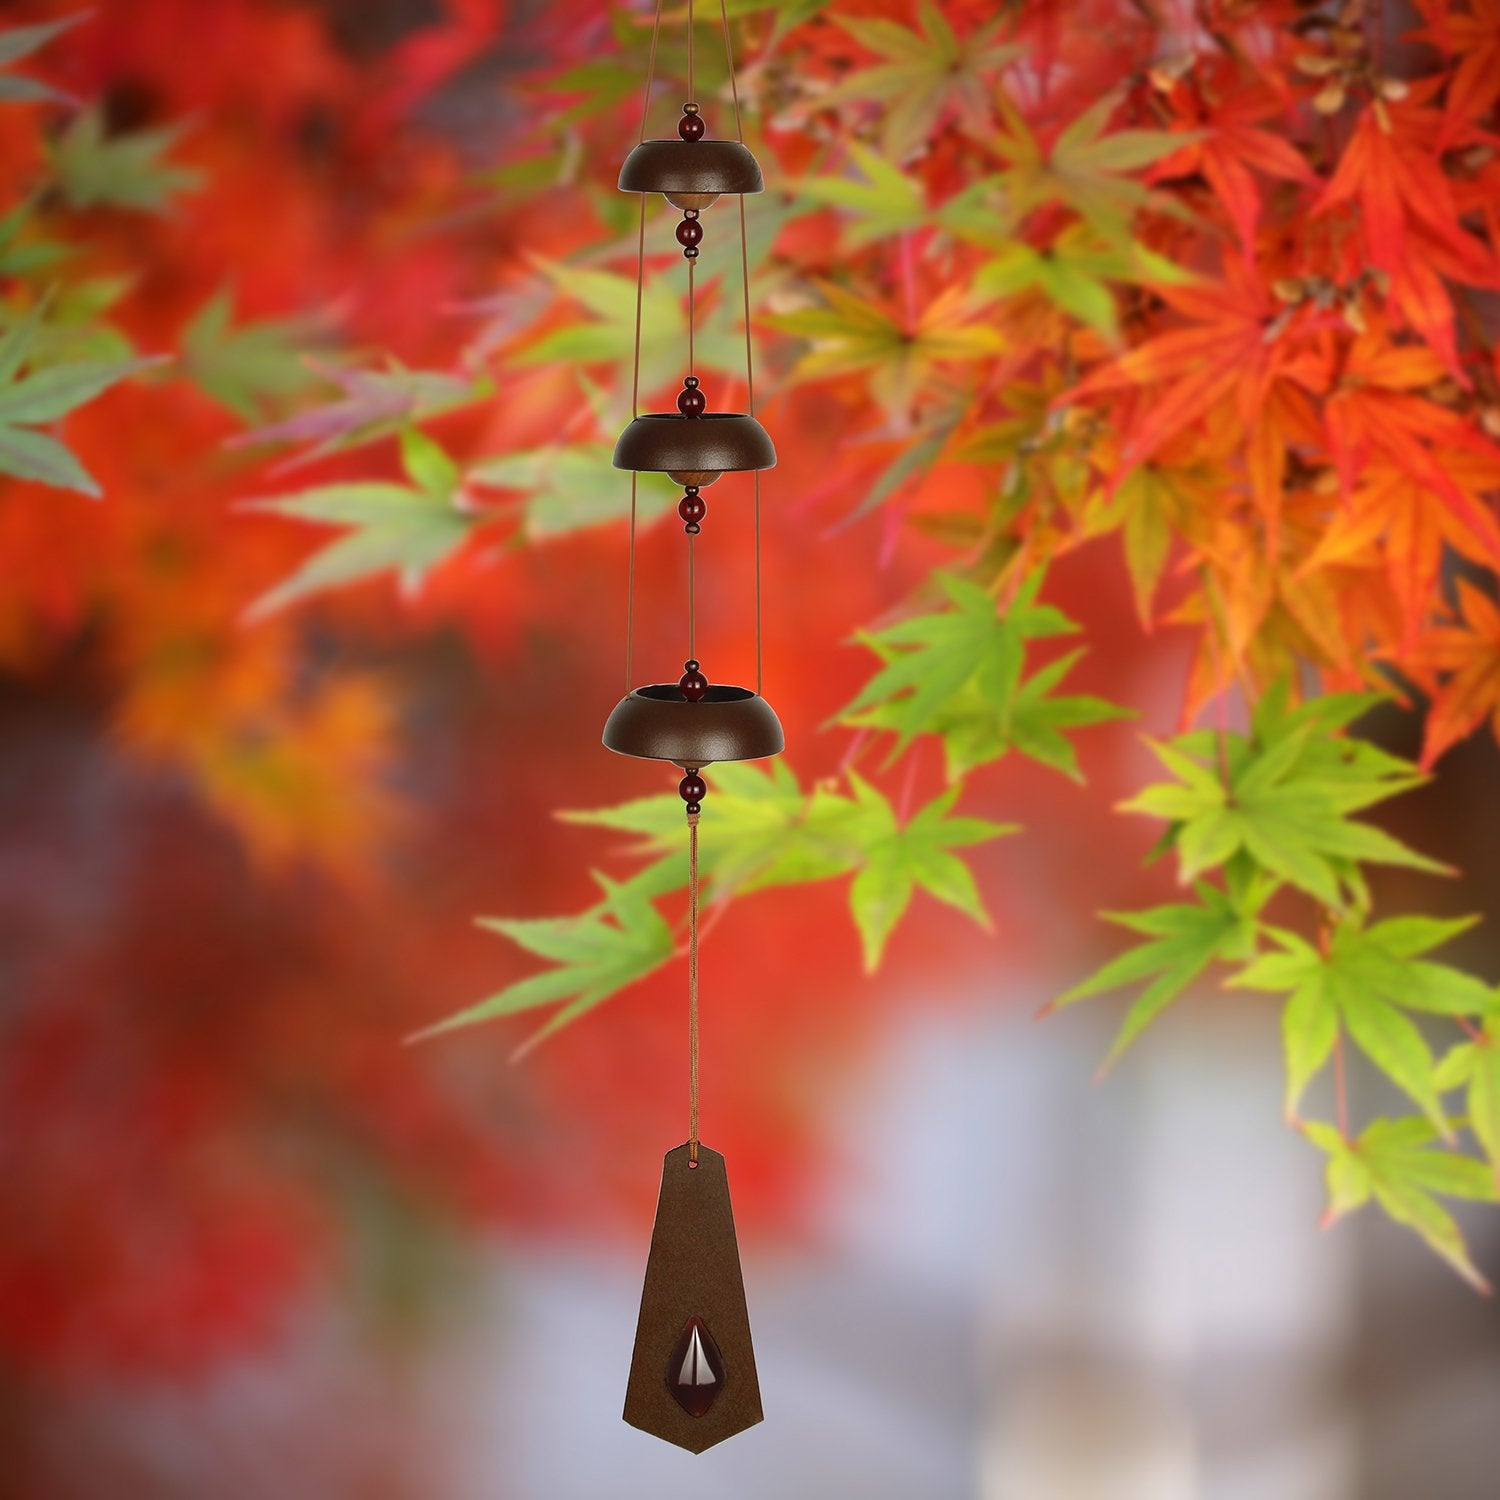 Woodstock Temple Bells - Rustic, Amber lifestyle image